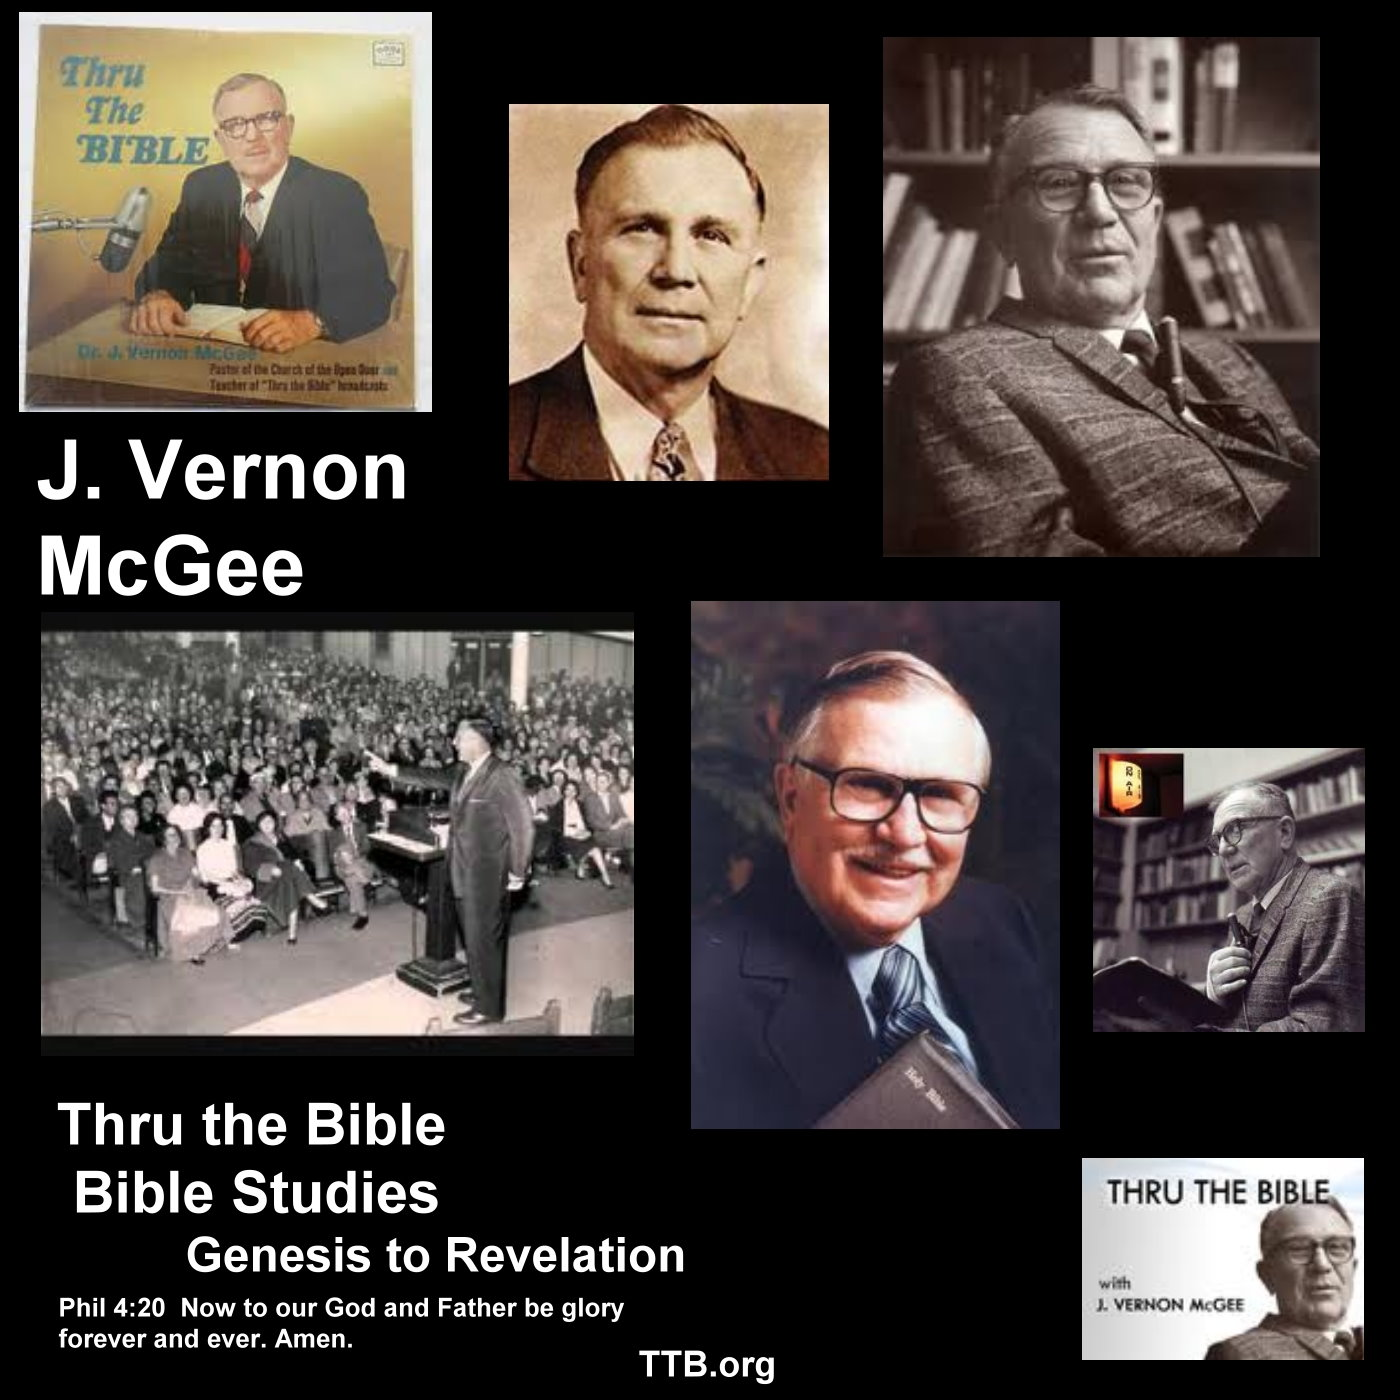 J. Vernon McGee - Thru the Bible - New Testament - Bible Studies - Book by Book